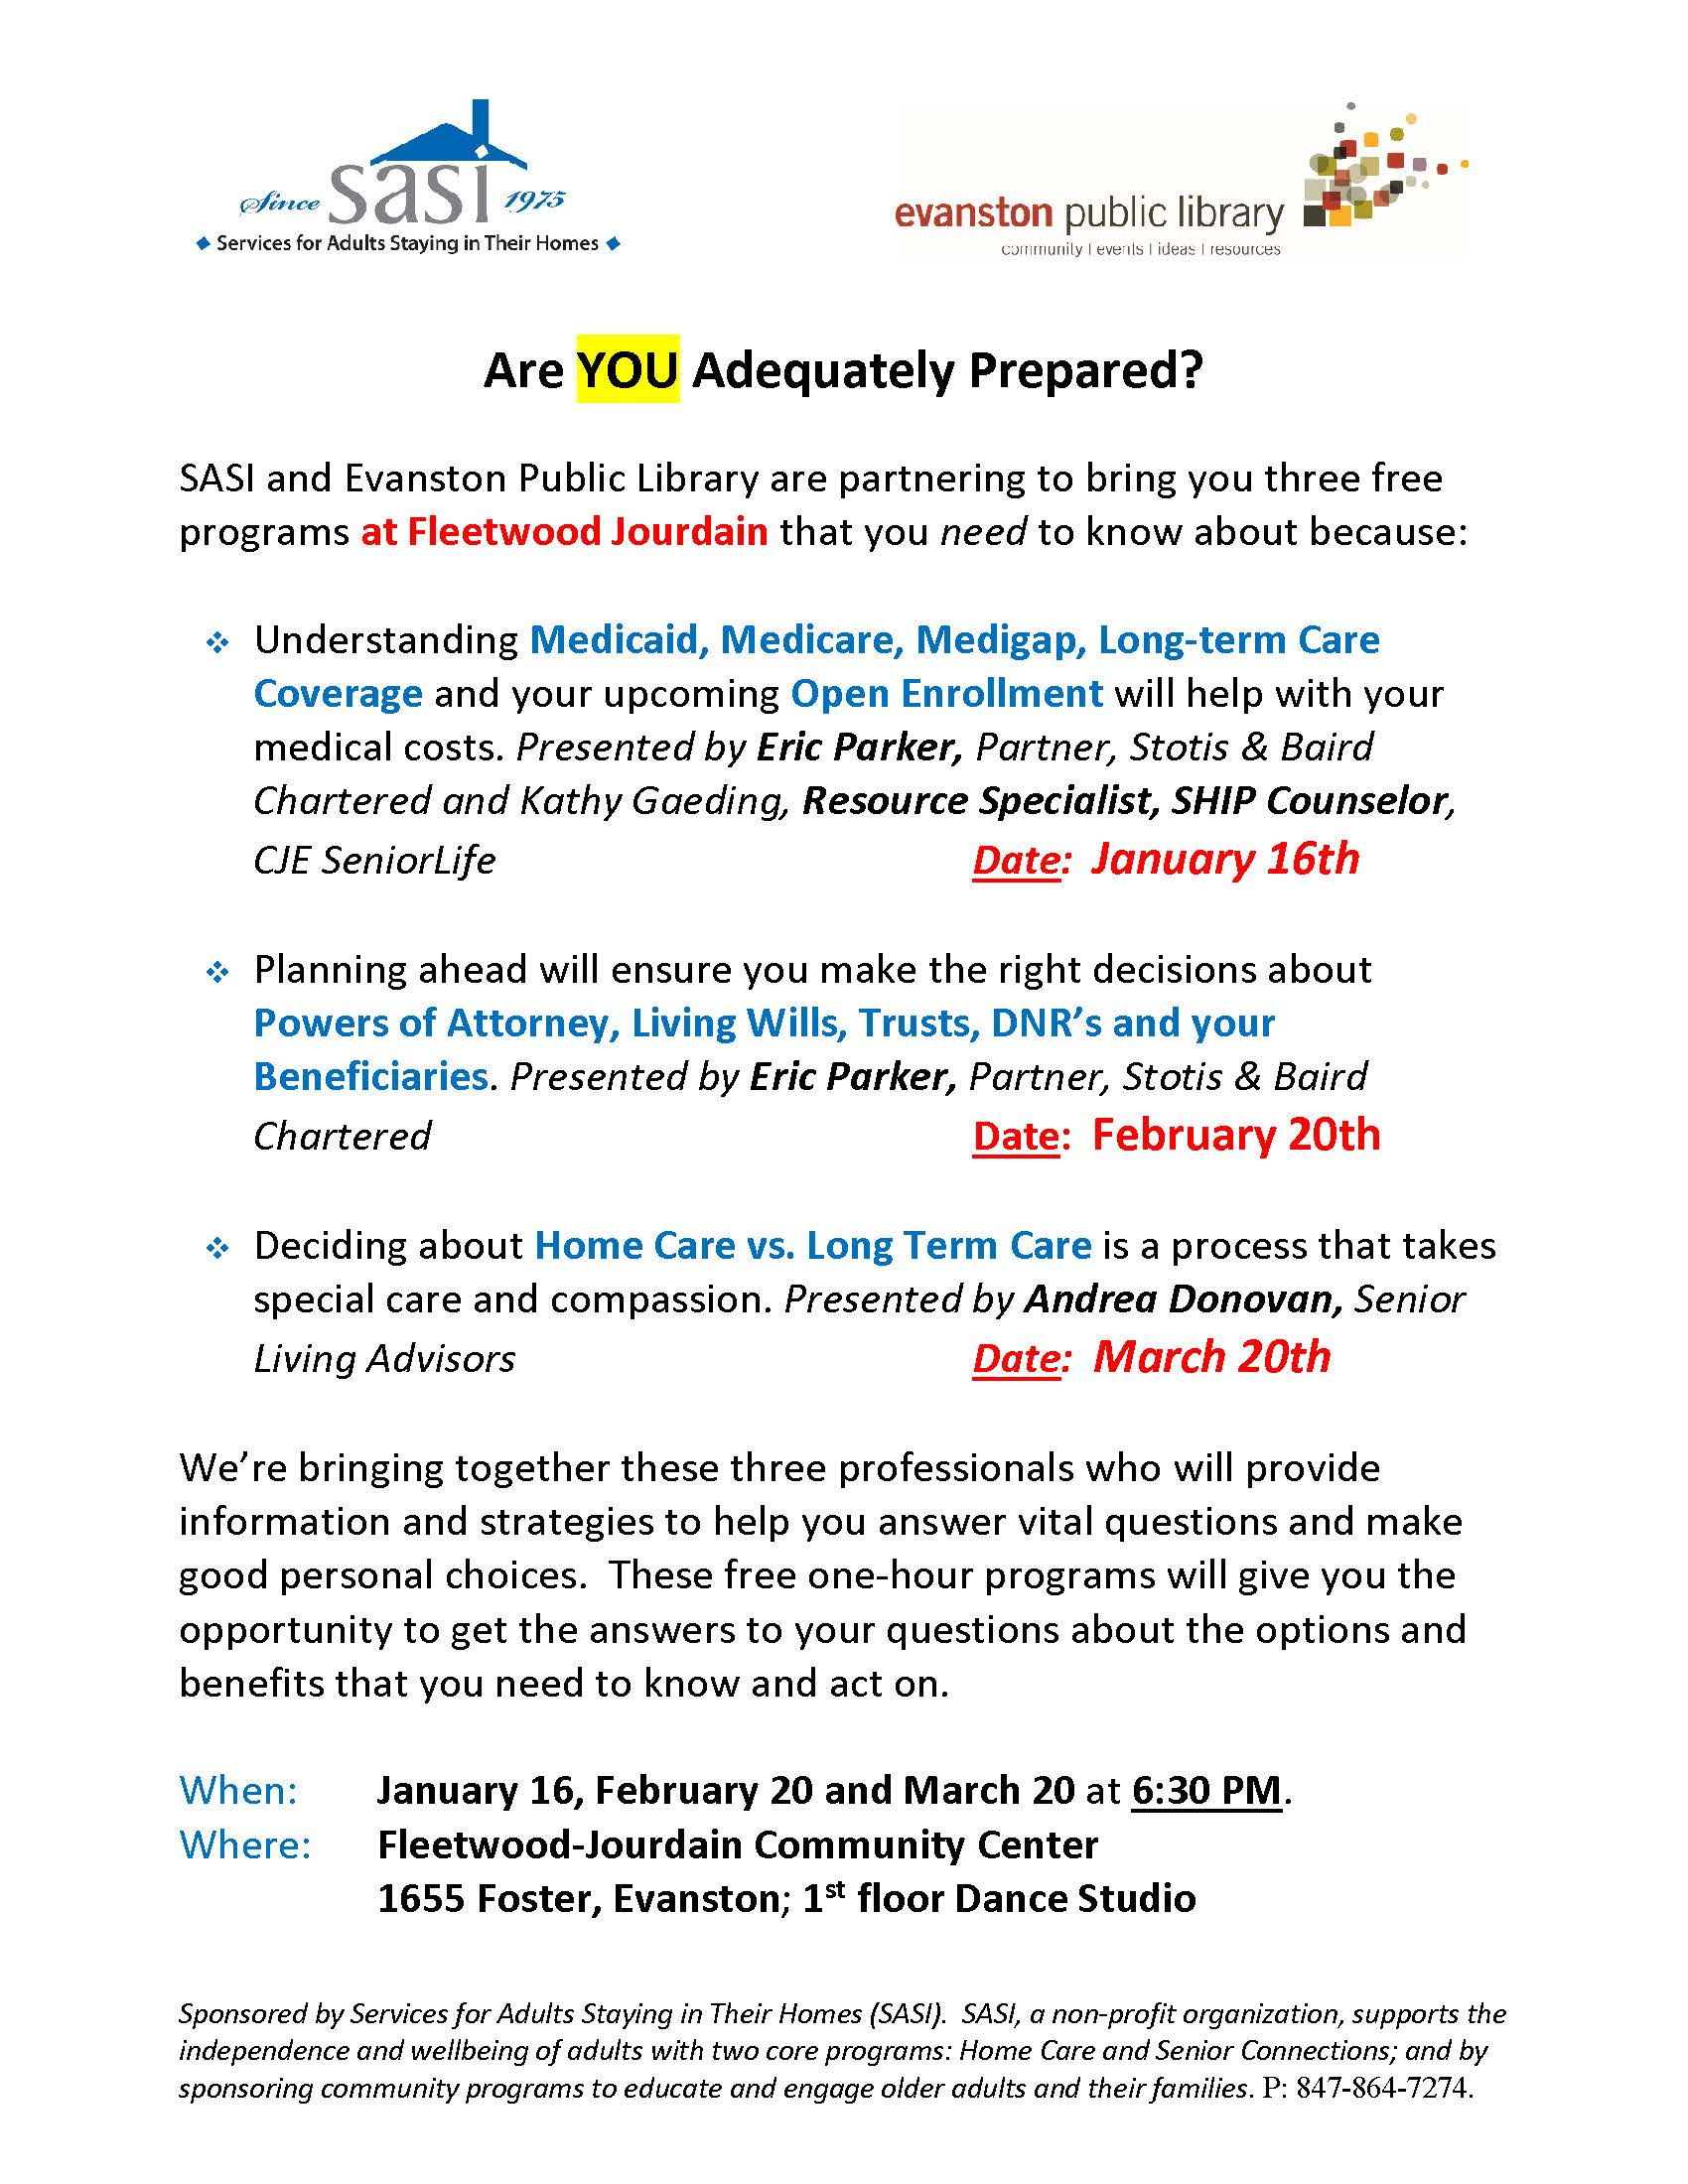 Are YOU Adequately Prepared? - Powers of Attorney, Living Wills, Trusts, DNR's and your Beneficiaries